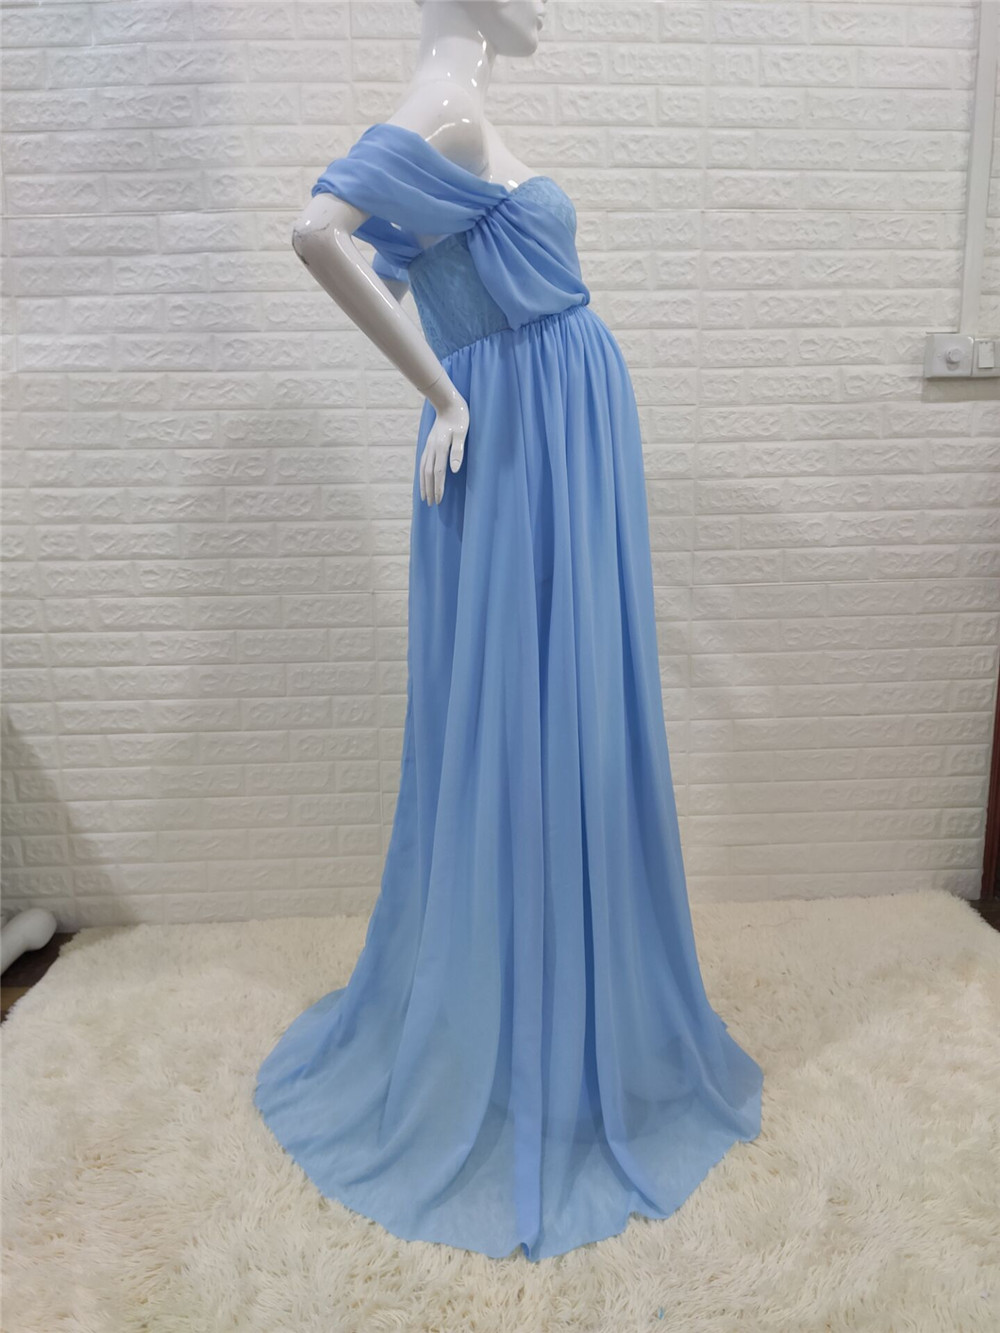 Shoulderless Sexy Maternity Dress Photo Shoot Long Pregnancy Dresses Photography Props Lace Chiffon Maxi Gown For Pregnant Women (17)